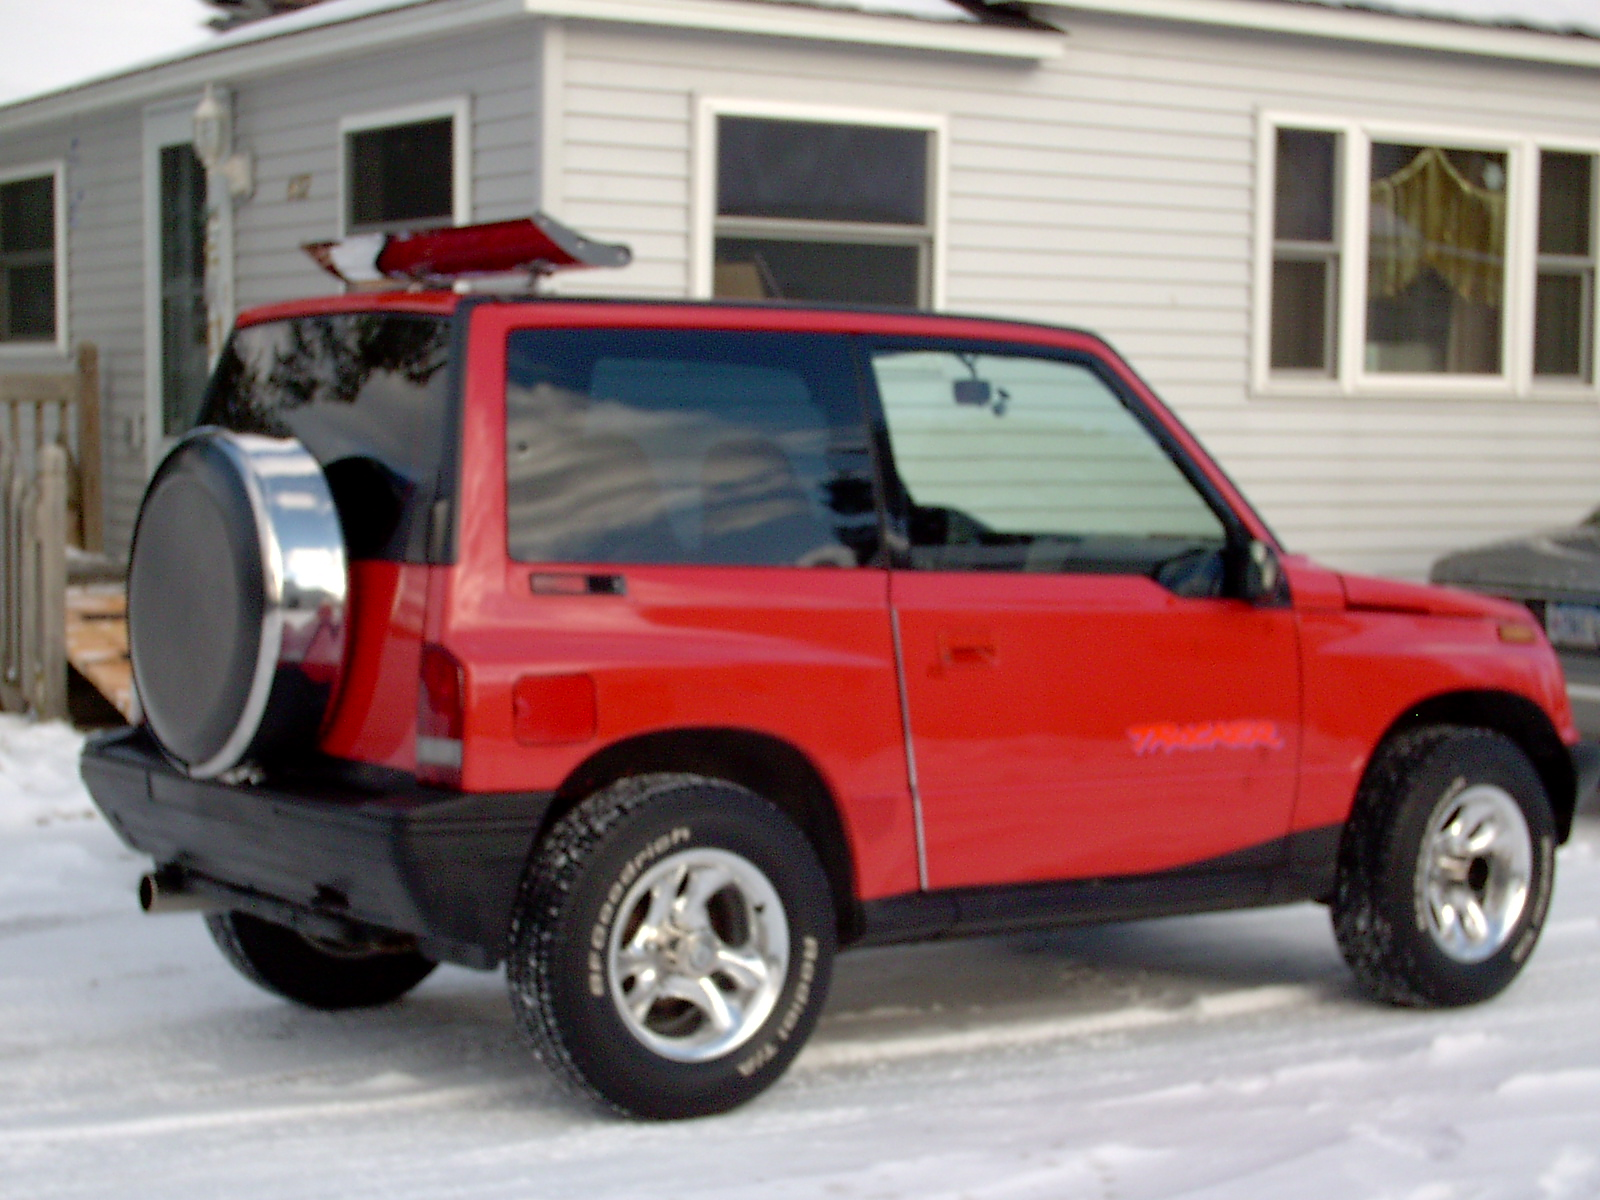 Geo Tracker also Voitures Des Usa Eagle 1988 1998 moreover 2000 Gmc Sonoma Fuel Pump Wiring Diagrams additionally Toyota Corolla  E90 moreover 1992 Geo Tracker Pictures C1890. on geo prizm 4x4